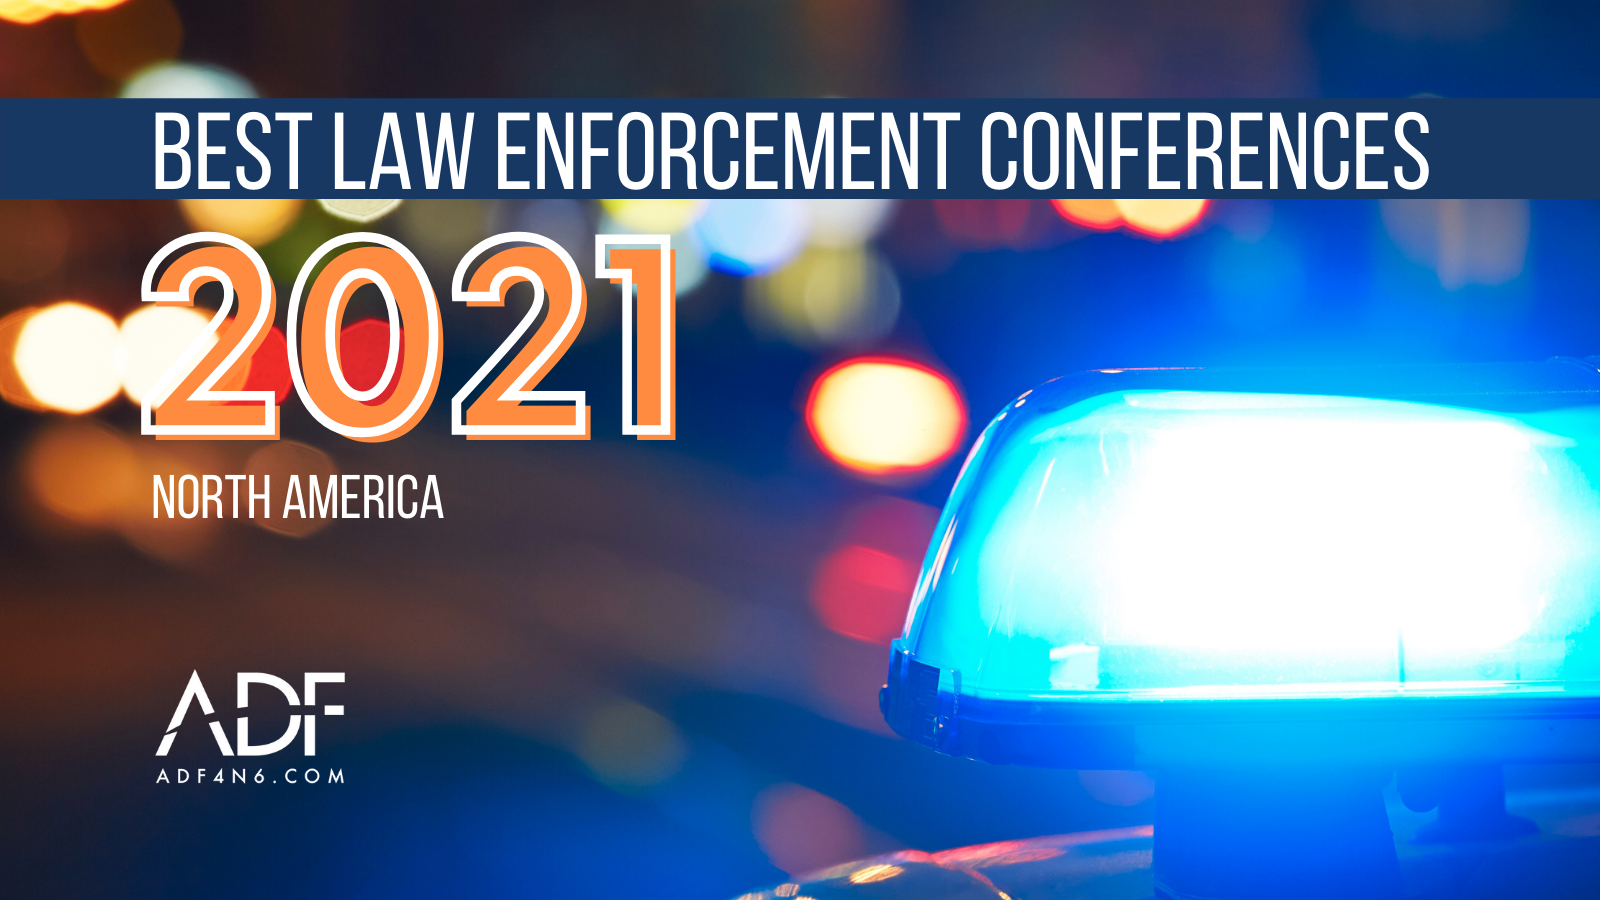 Best 2021 Law Enforcement Conferences in North America